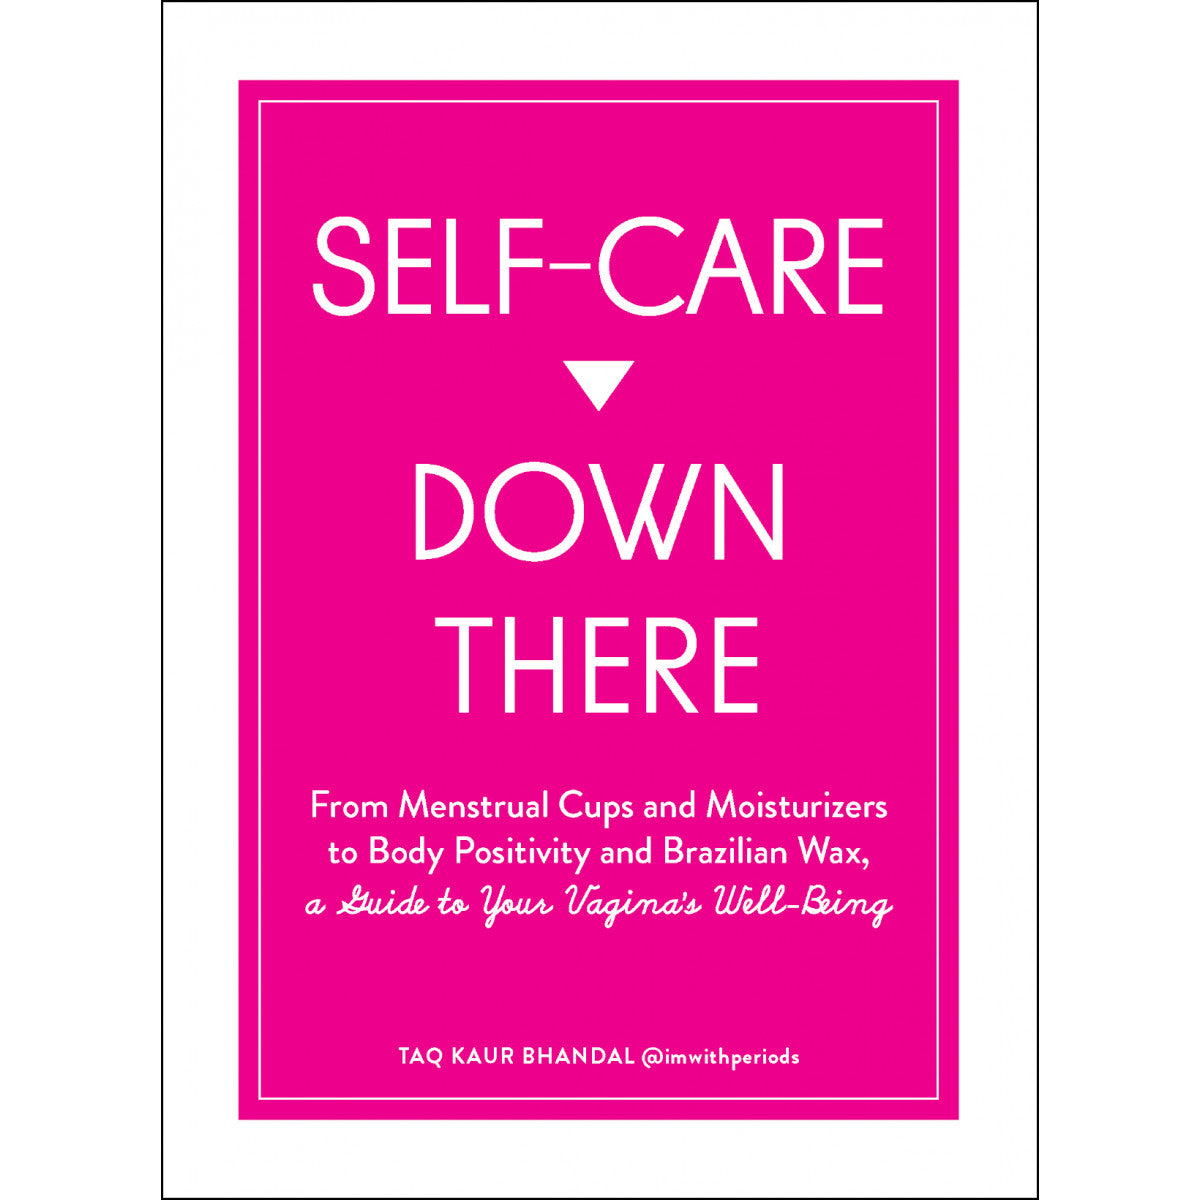 SELF CARE DOWN THERE: A GT YOUR VAGINA'S WELL-BEING